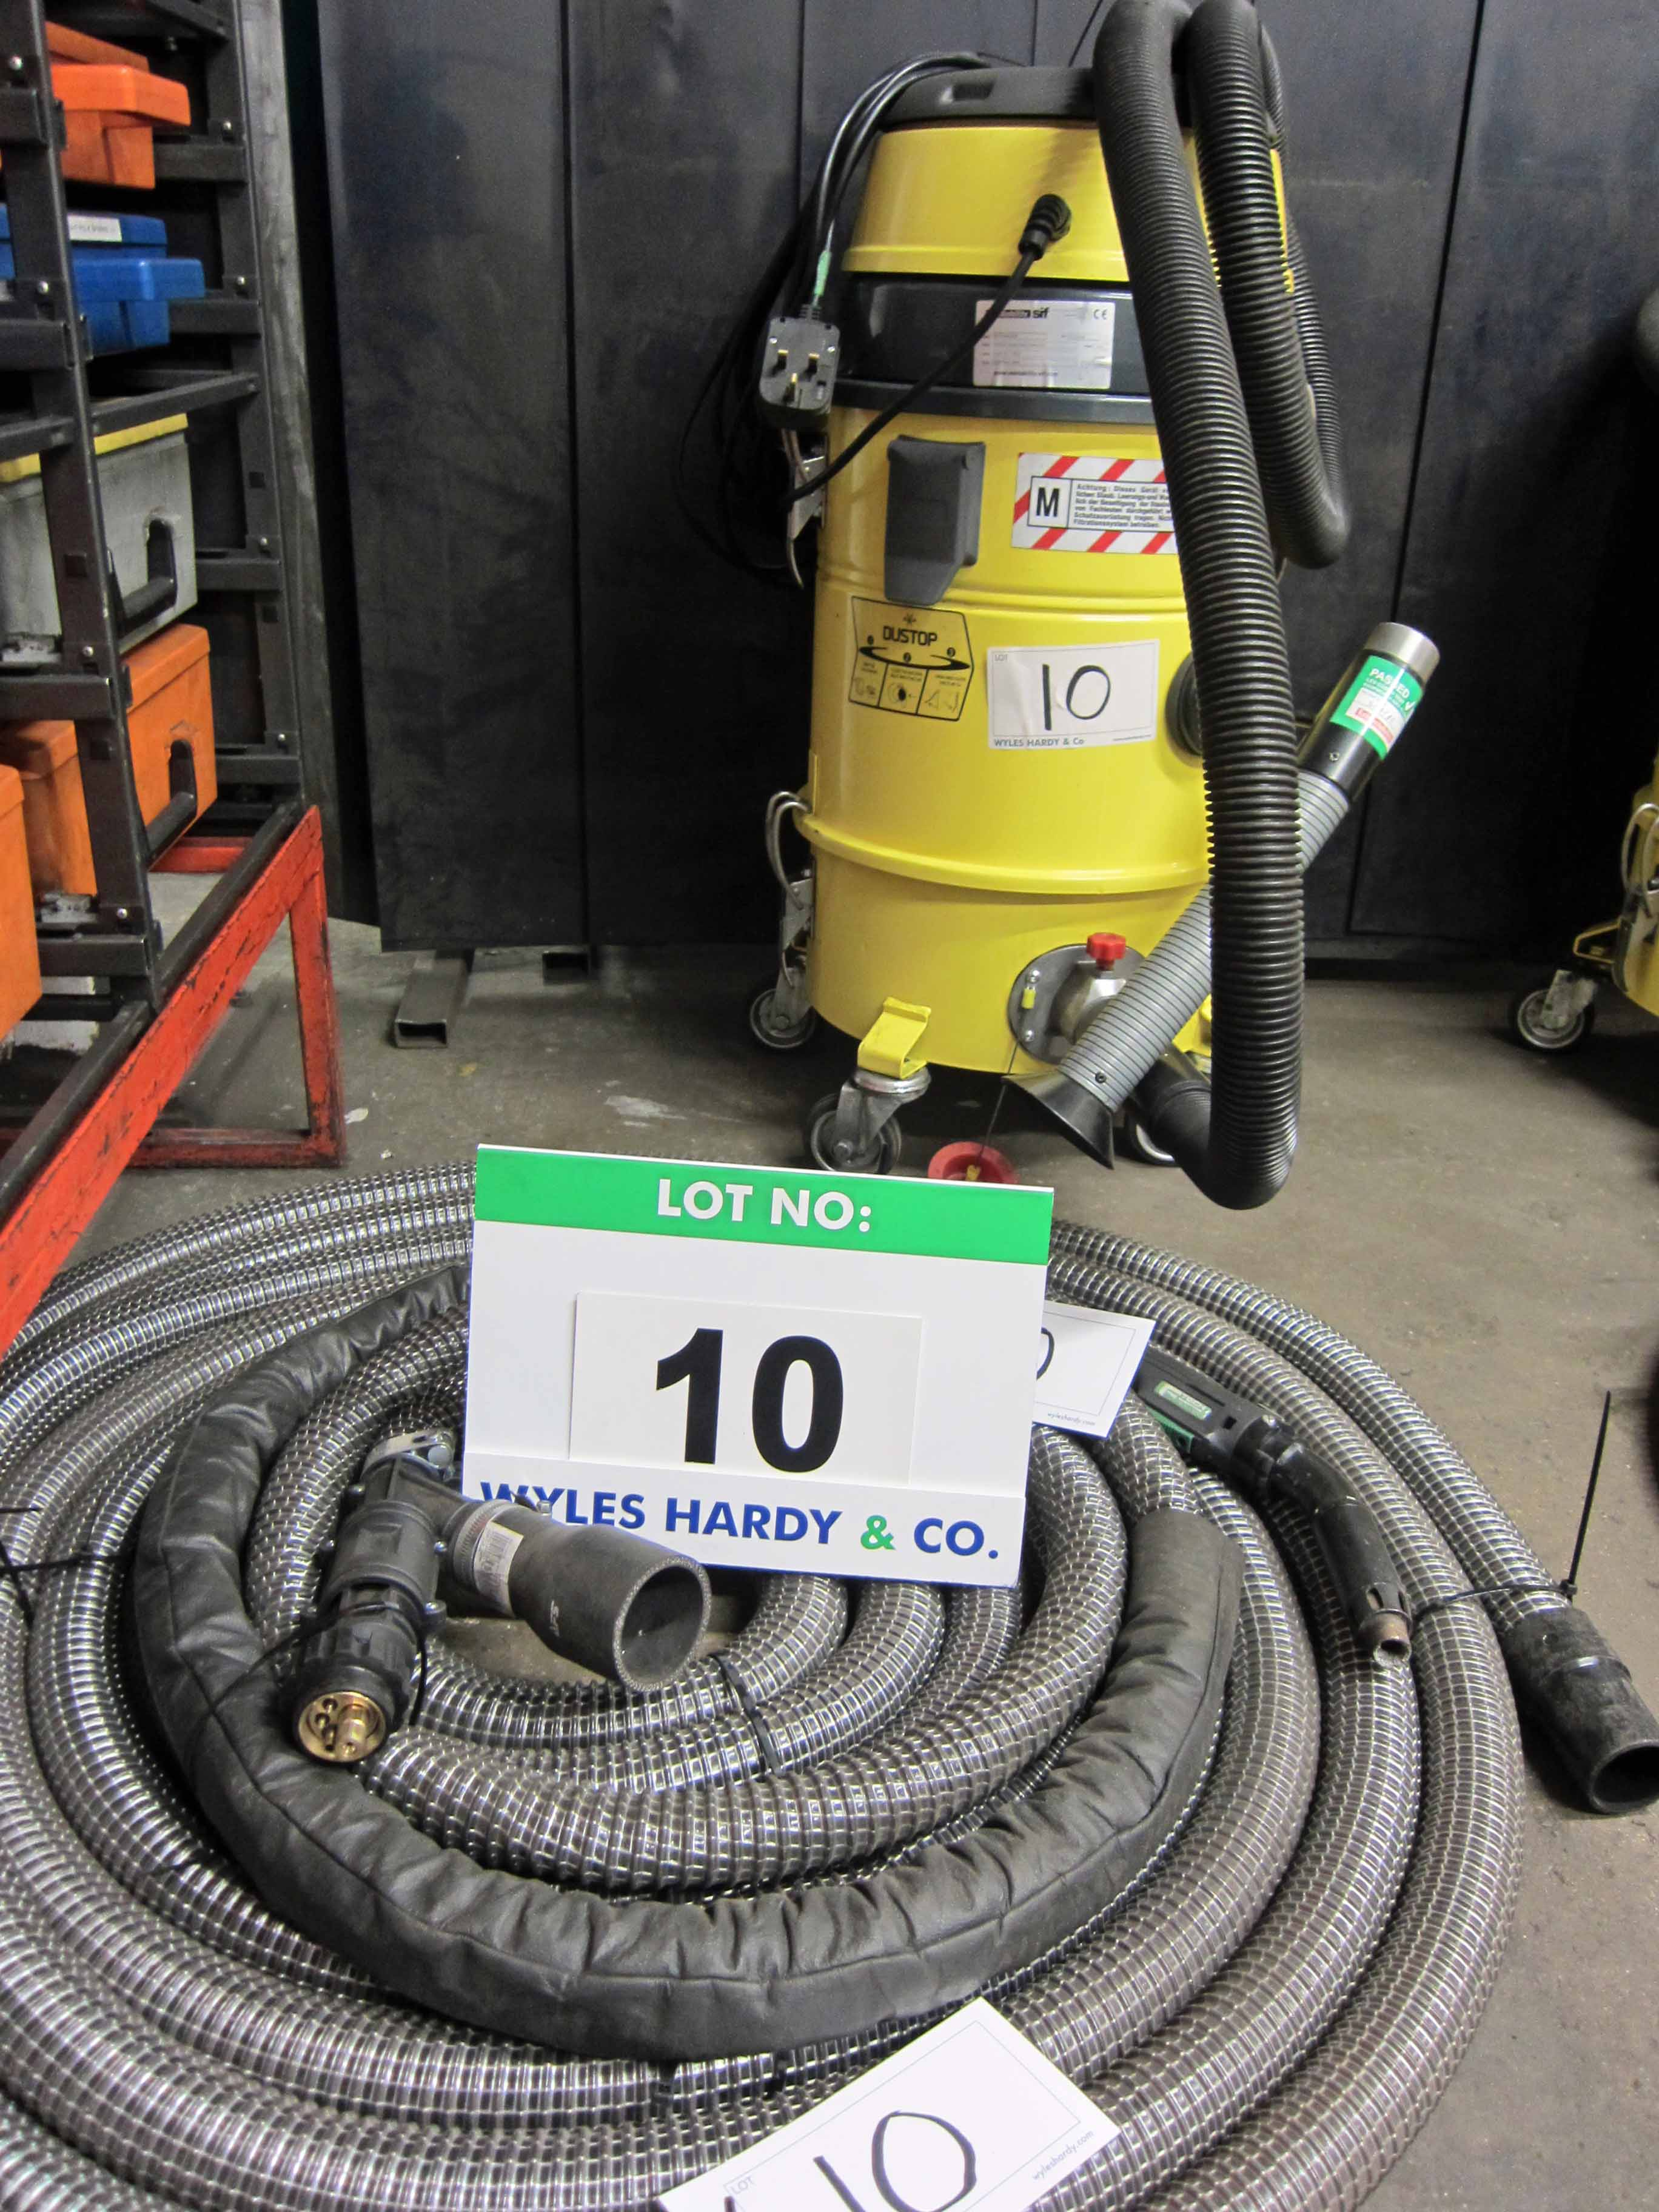 A WELDABILITY SIF Model EXTSVAC 240 240V Mobile Fume Extractor complete with F-TECH Fume - Image 2 of 3